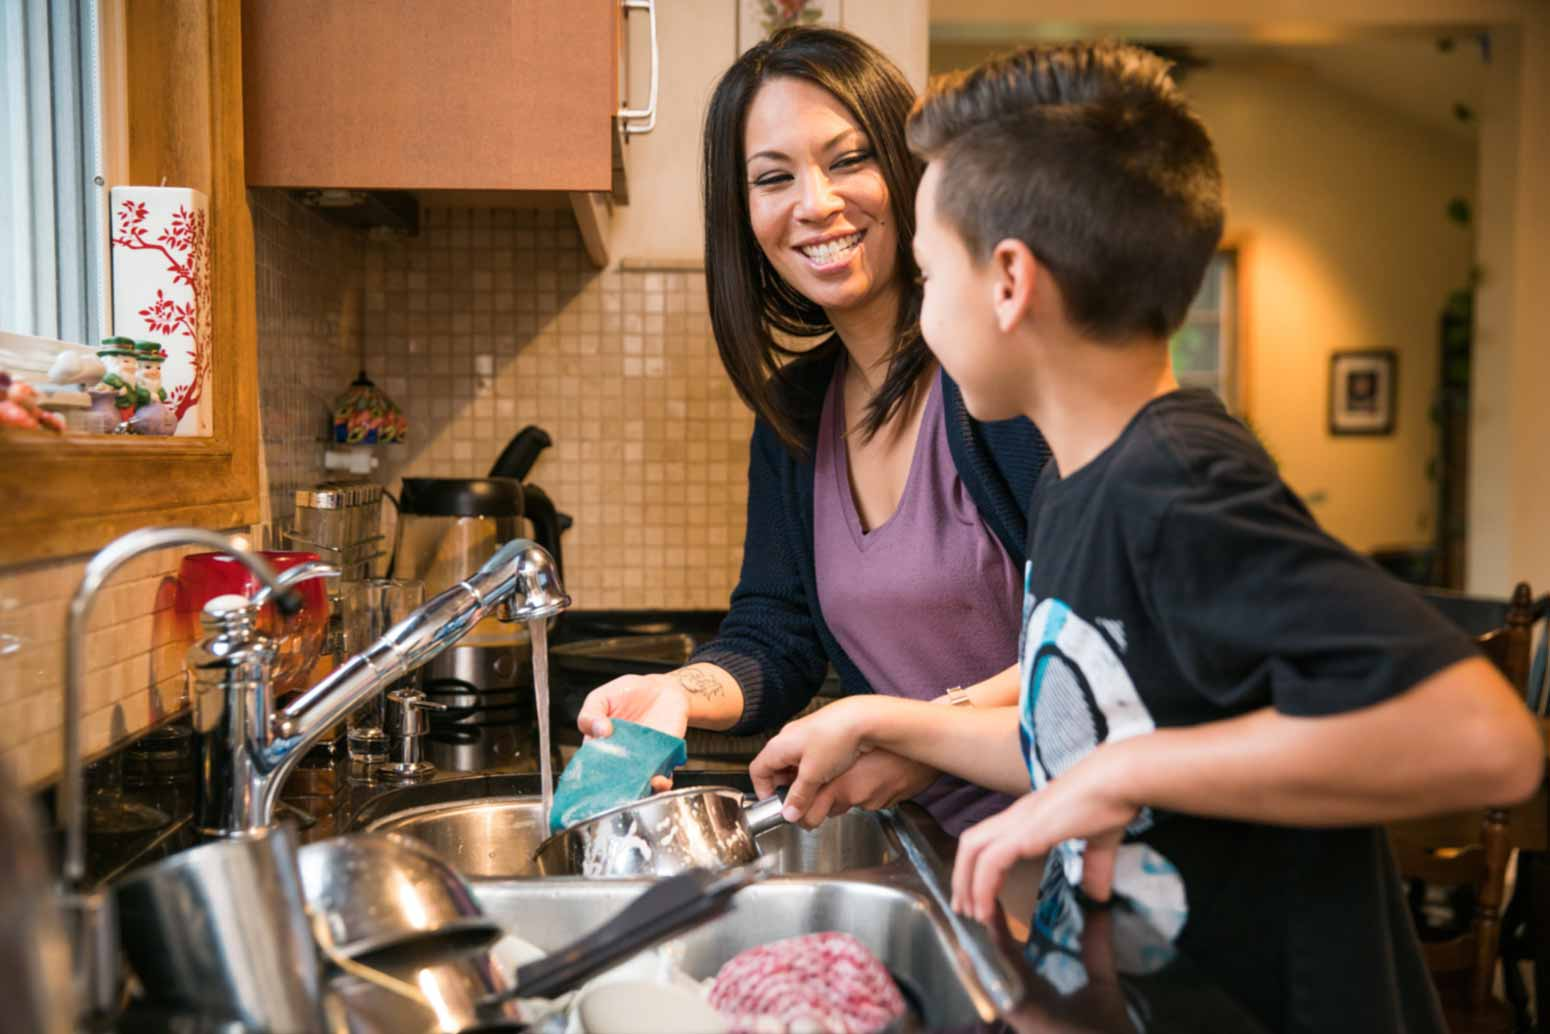 Teach kids to help with chores and housework